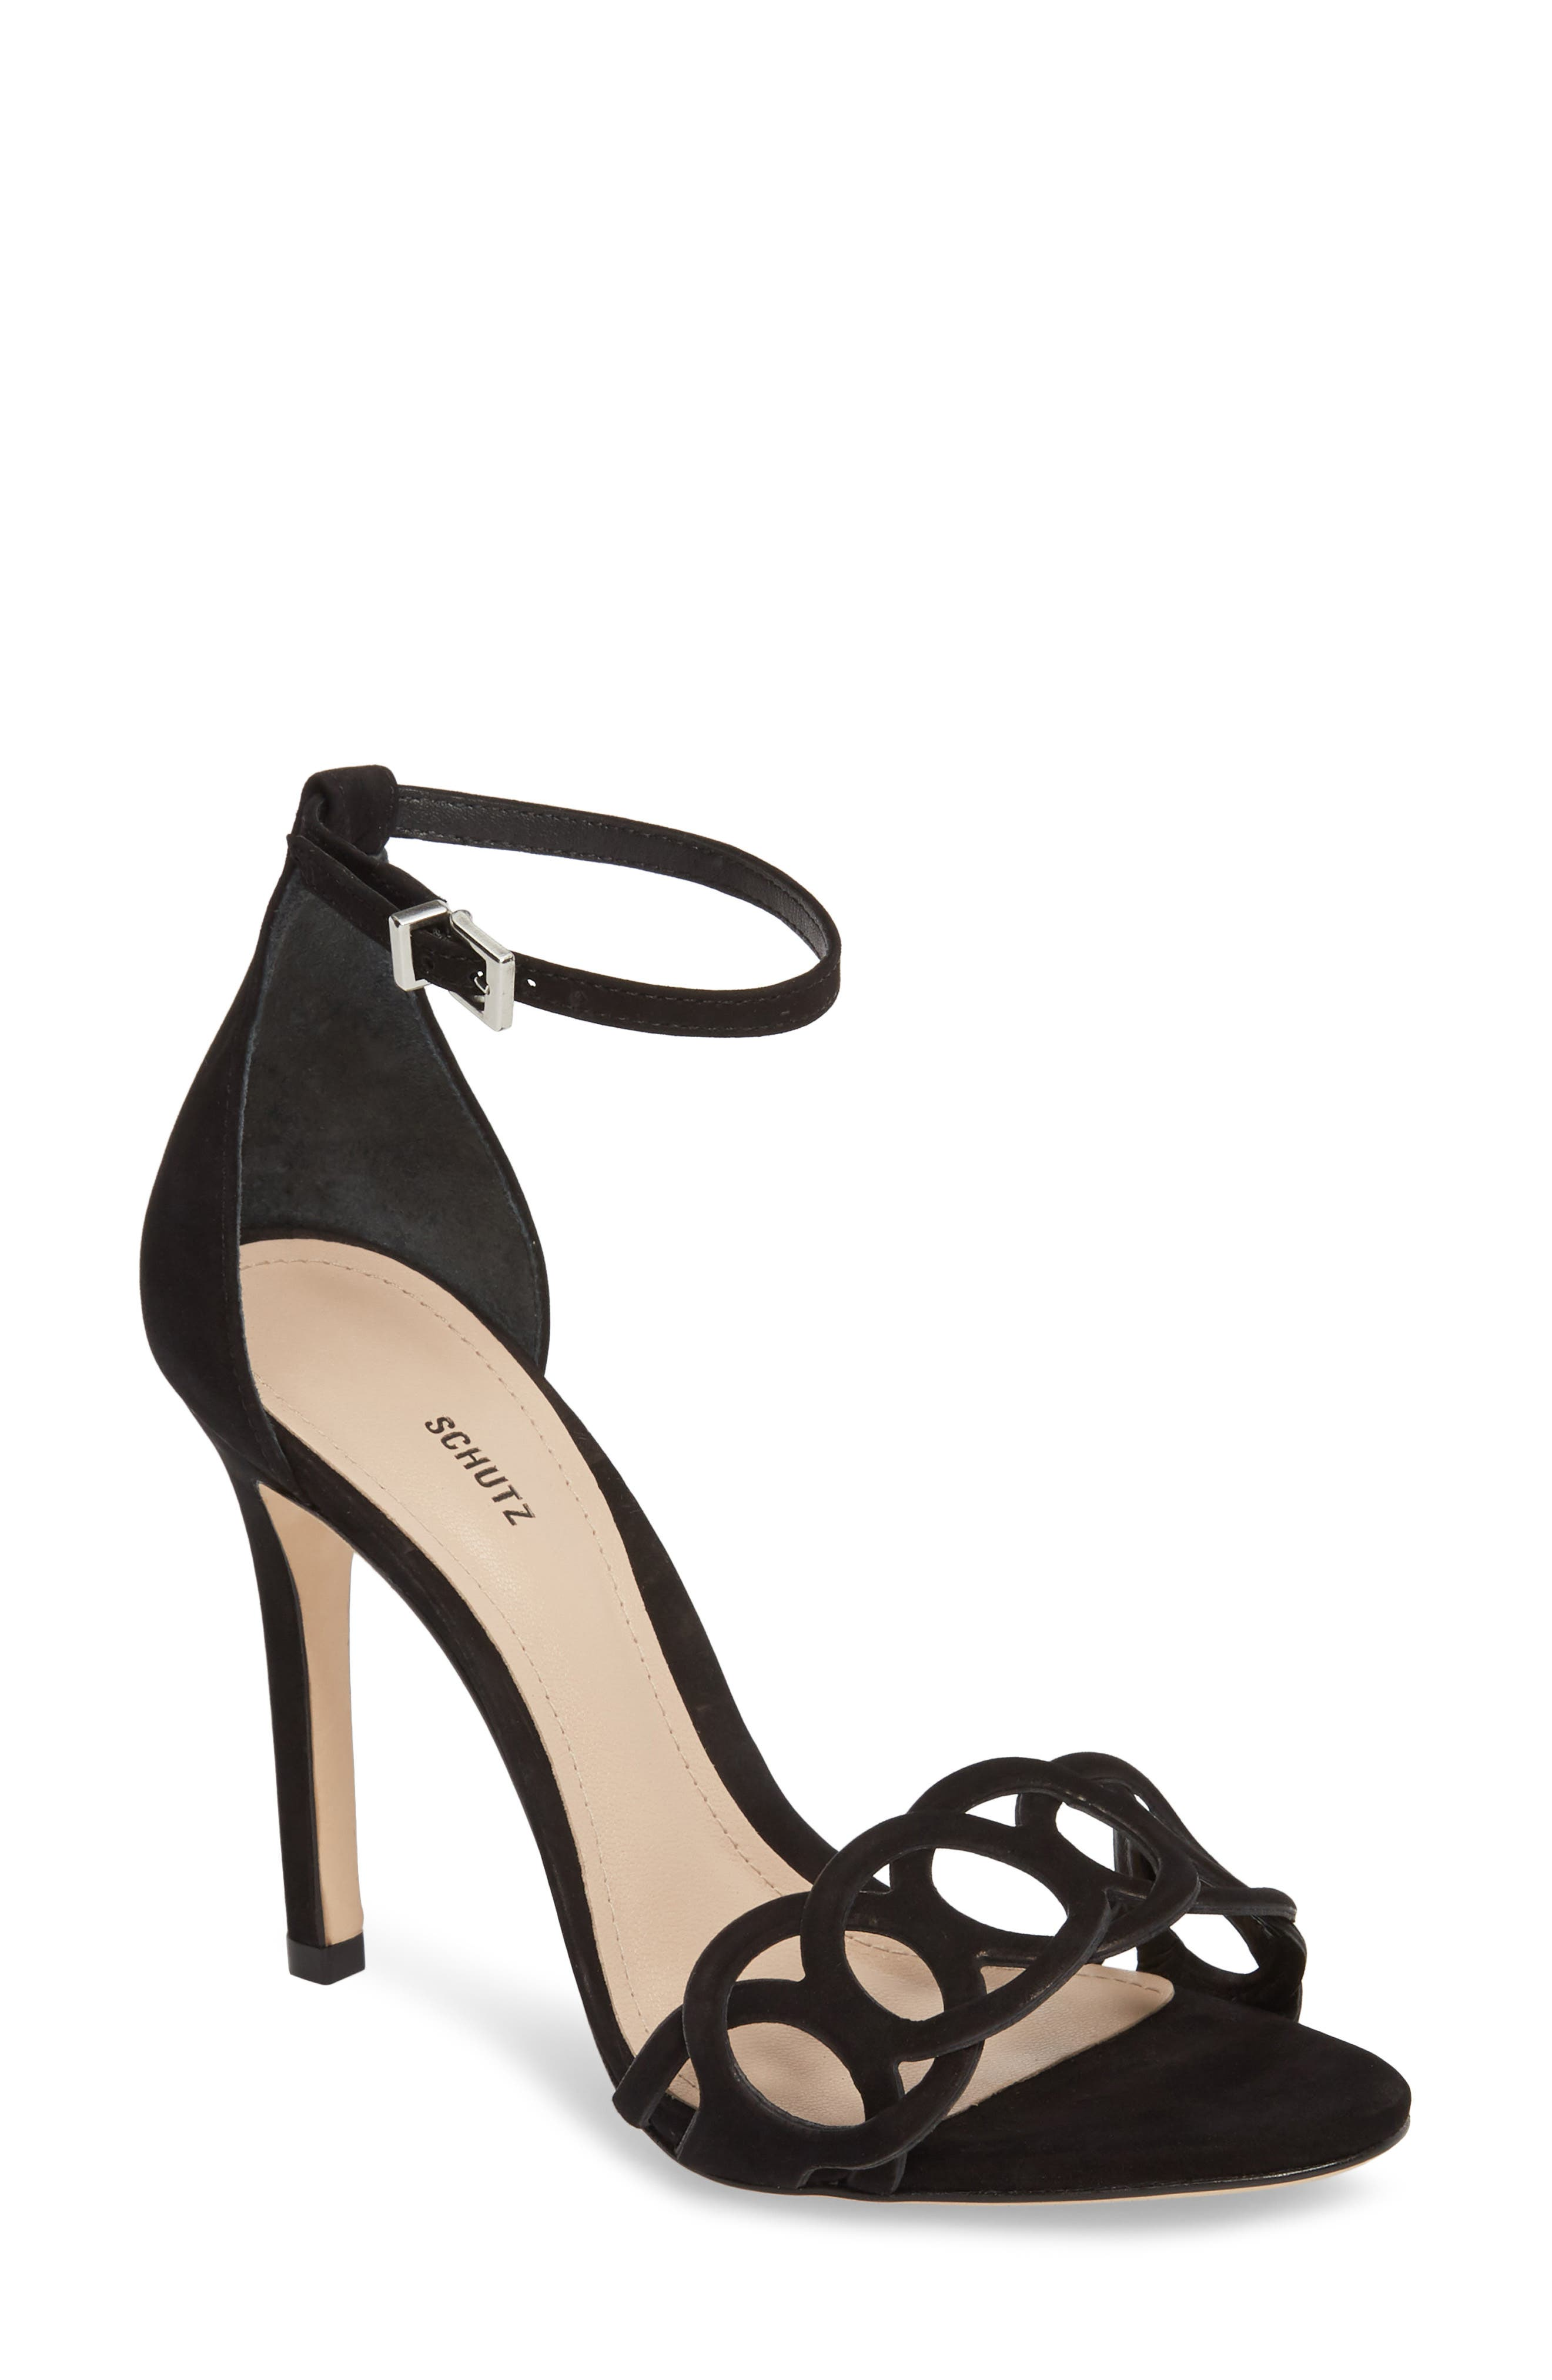 SCHUTZ Sthefany Ankle Strap Sandal, Main, color, 005